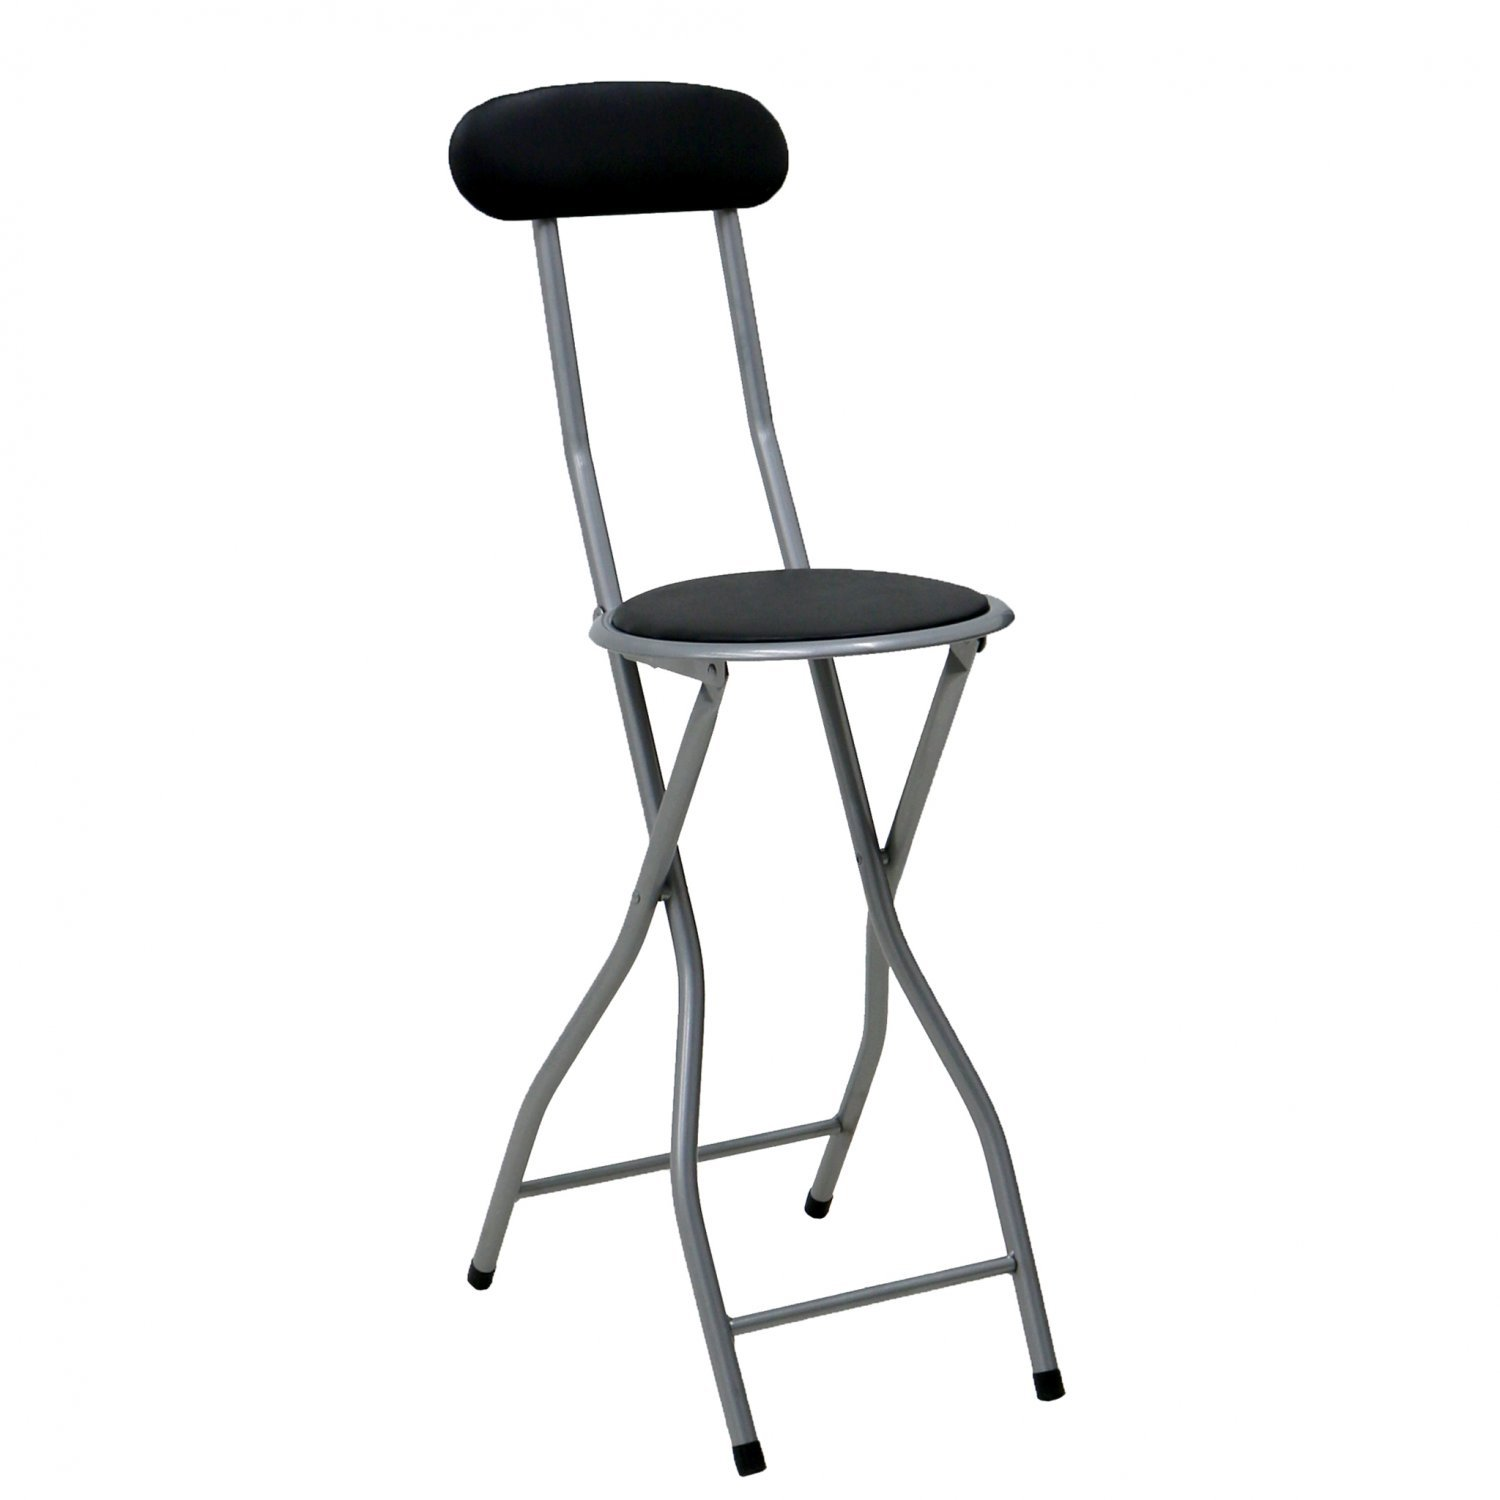 Black Padded Folding High Chair Breakfast Kitchen Bar